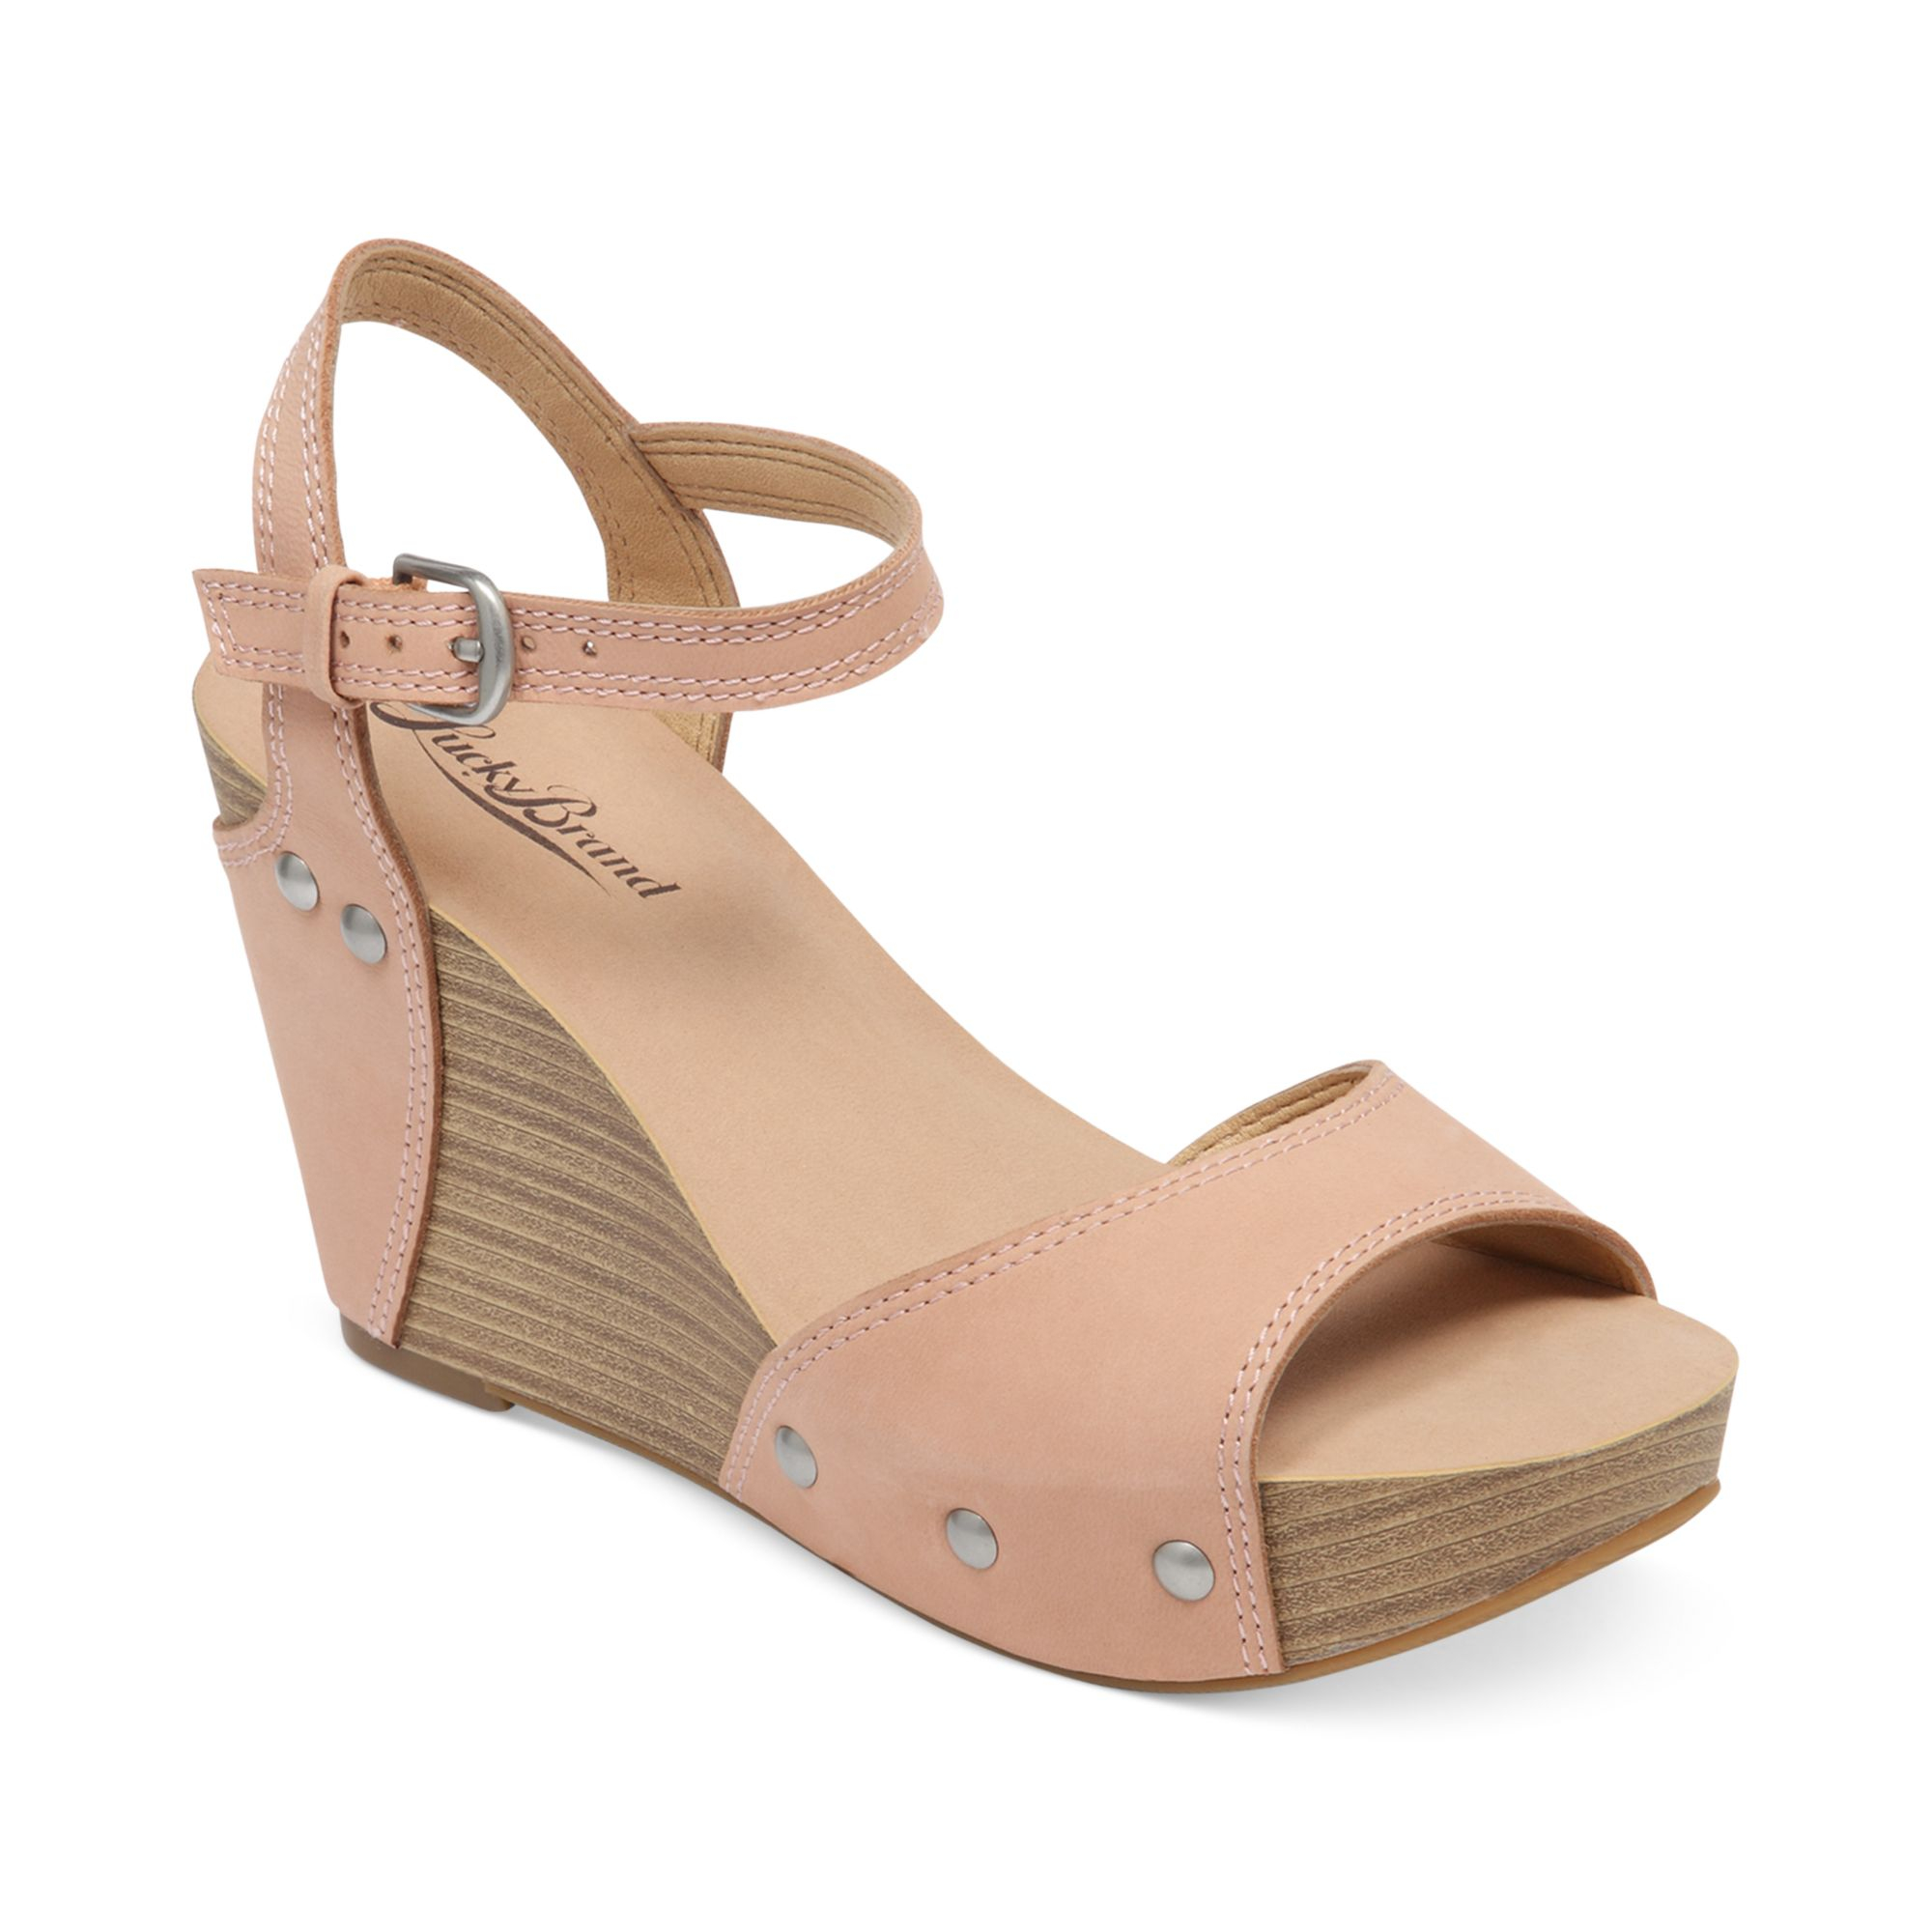 Lucky Brand Marshha Platform Wedge Sandals In Beige (Blush) | Lyst